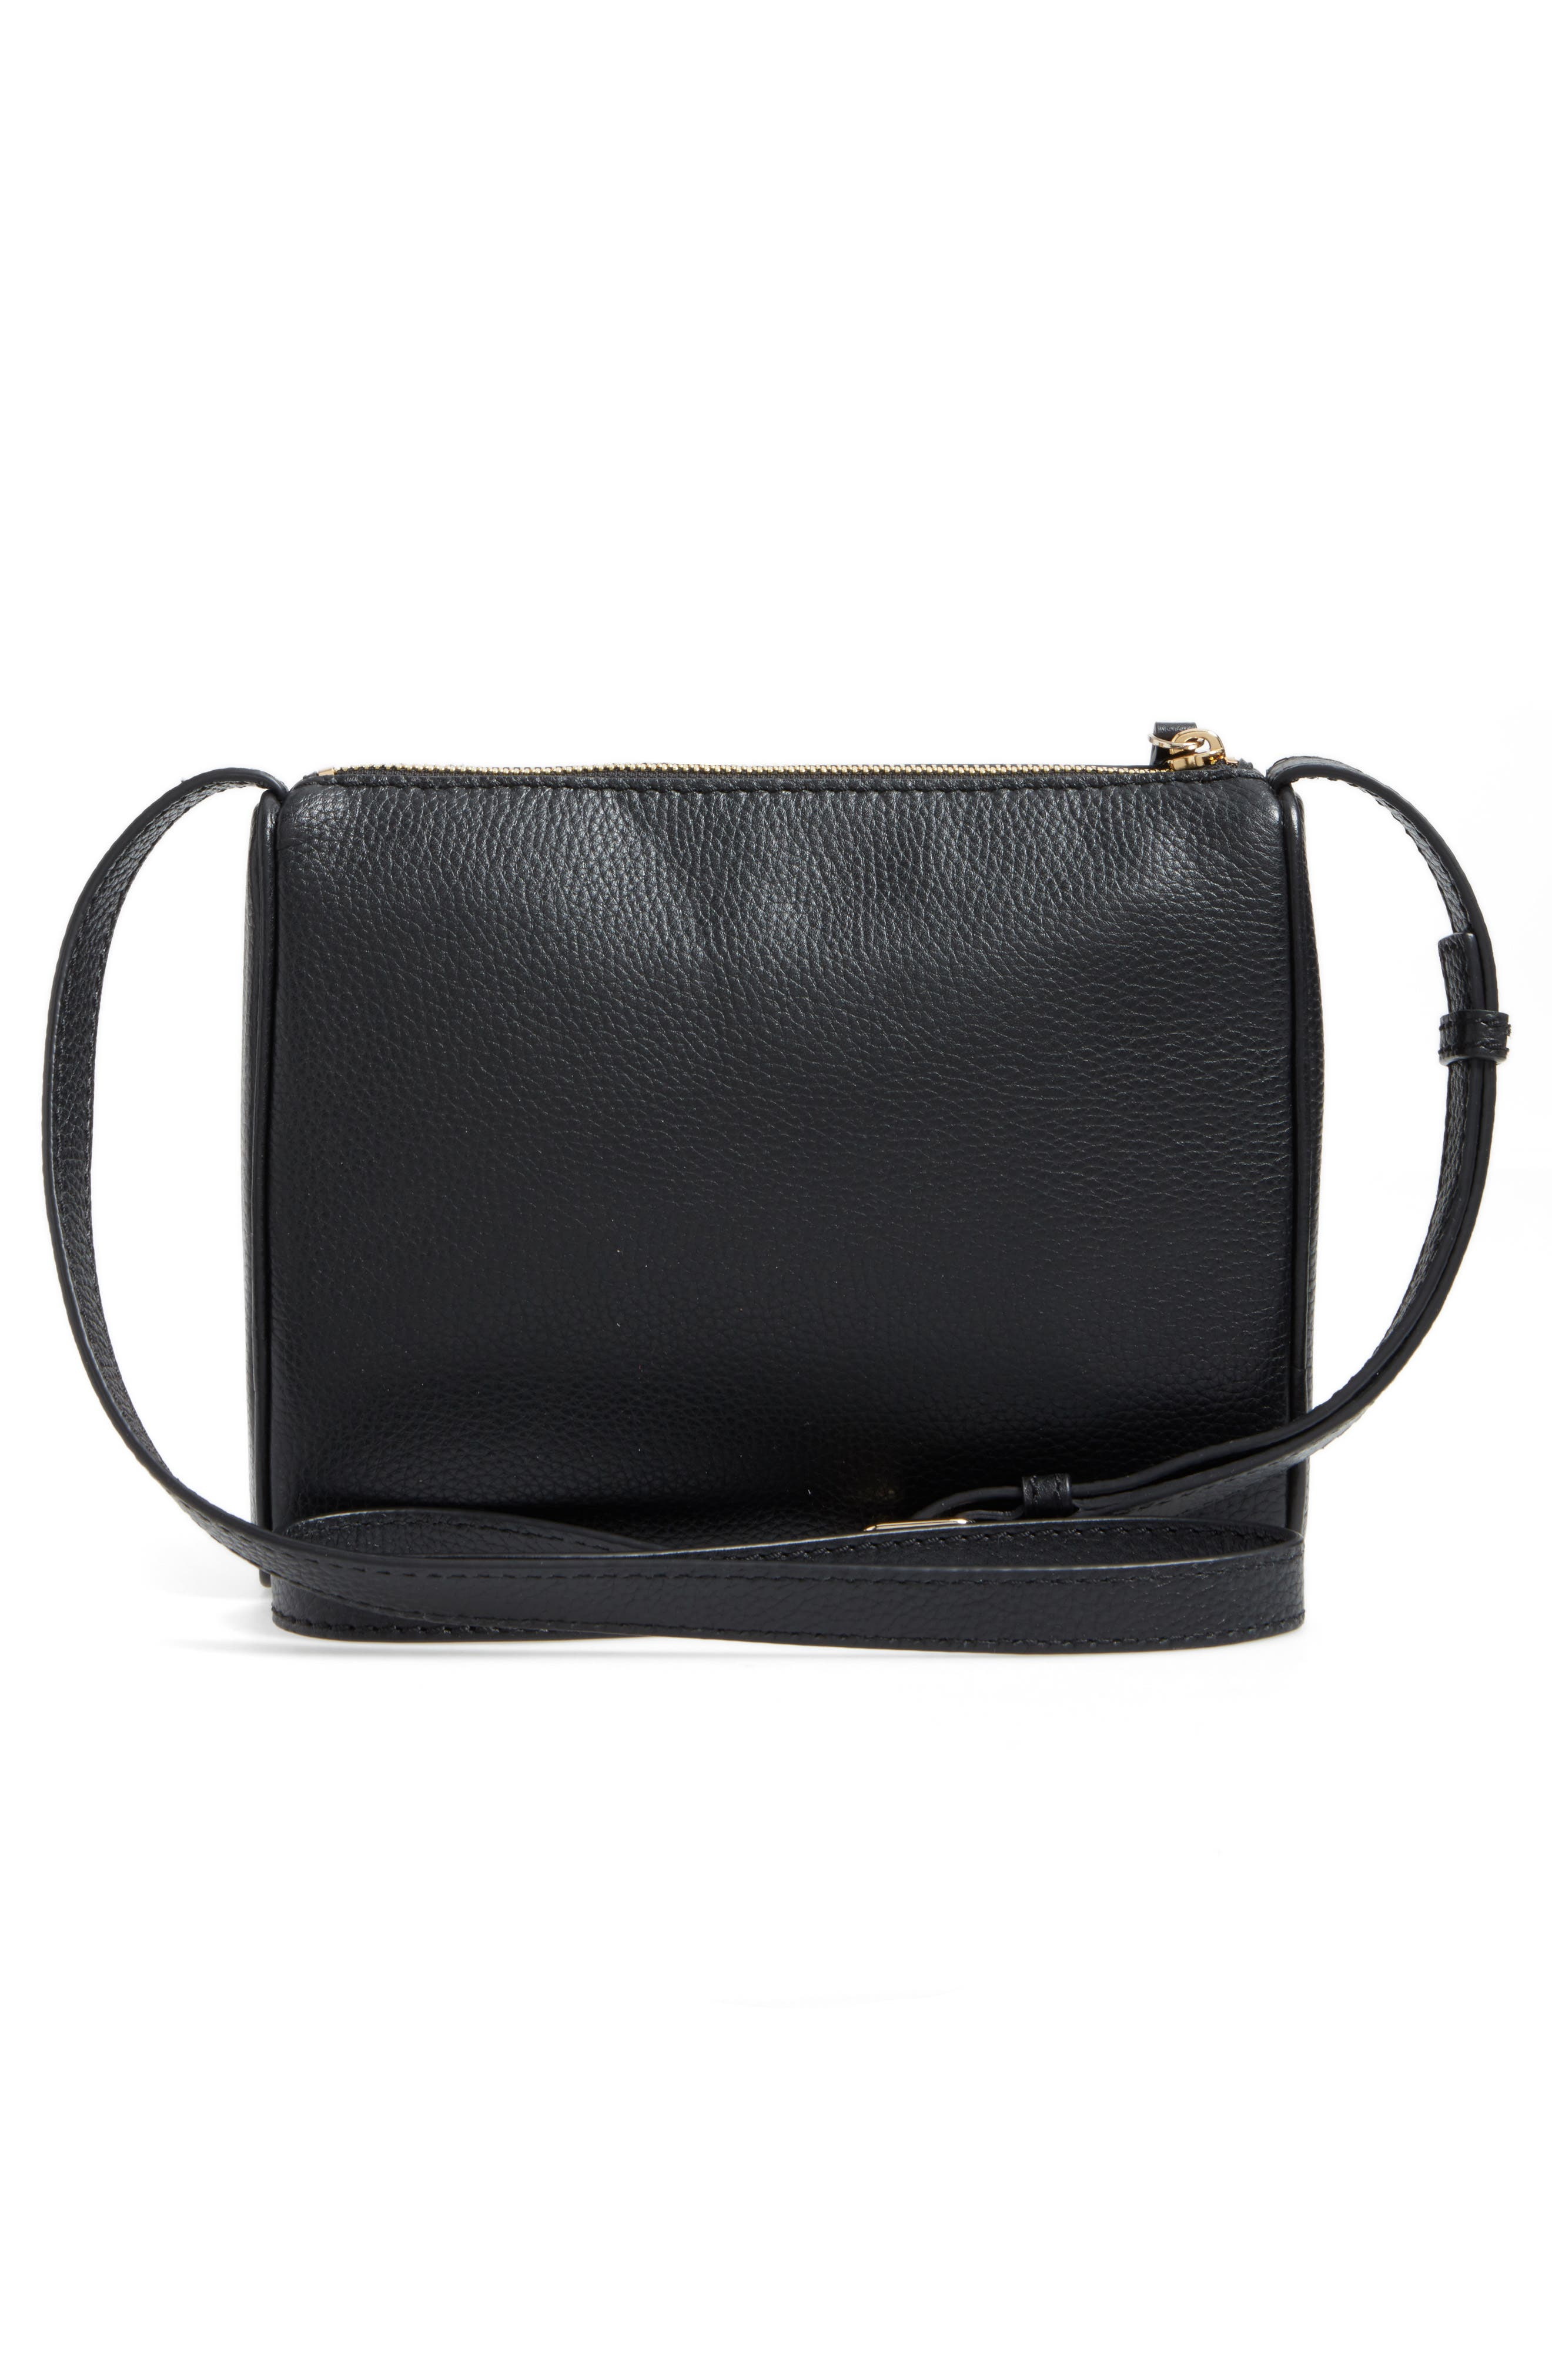 young lane - cayli leather crossbody bag,                             Alternate thumbnail 3, color,                             001